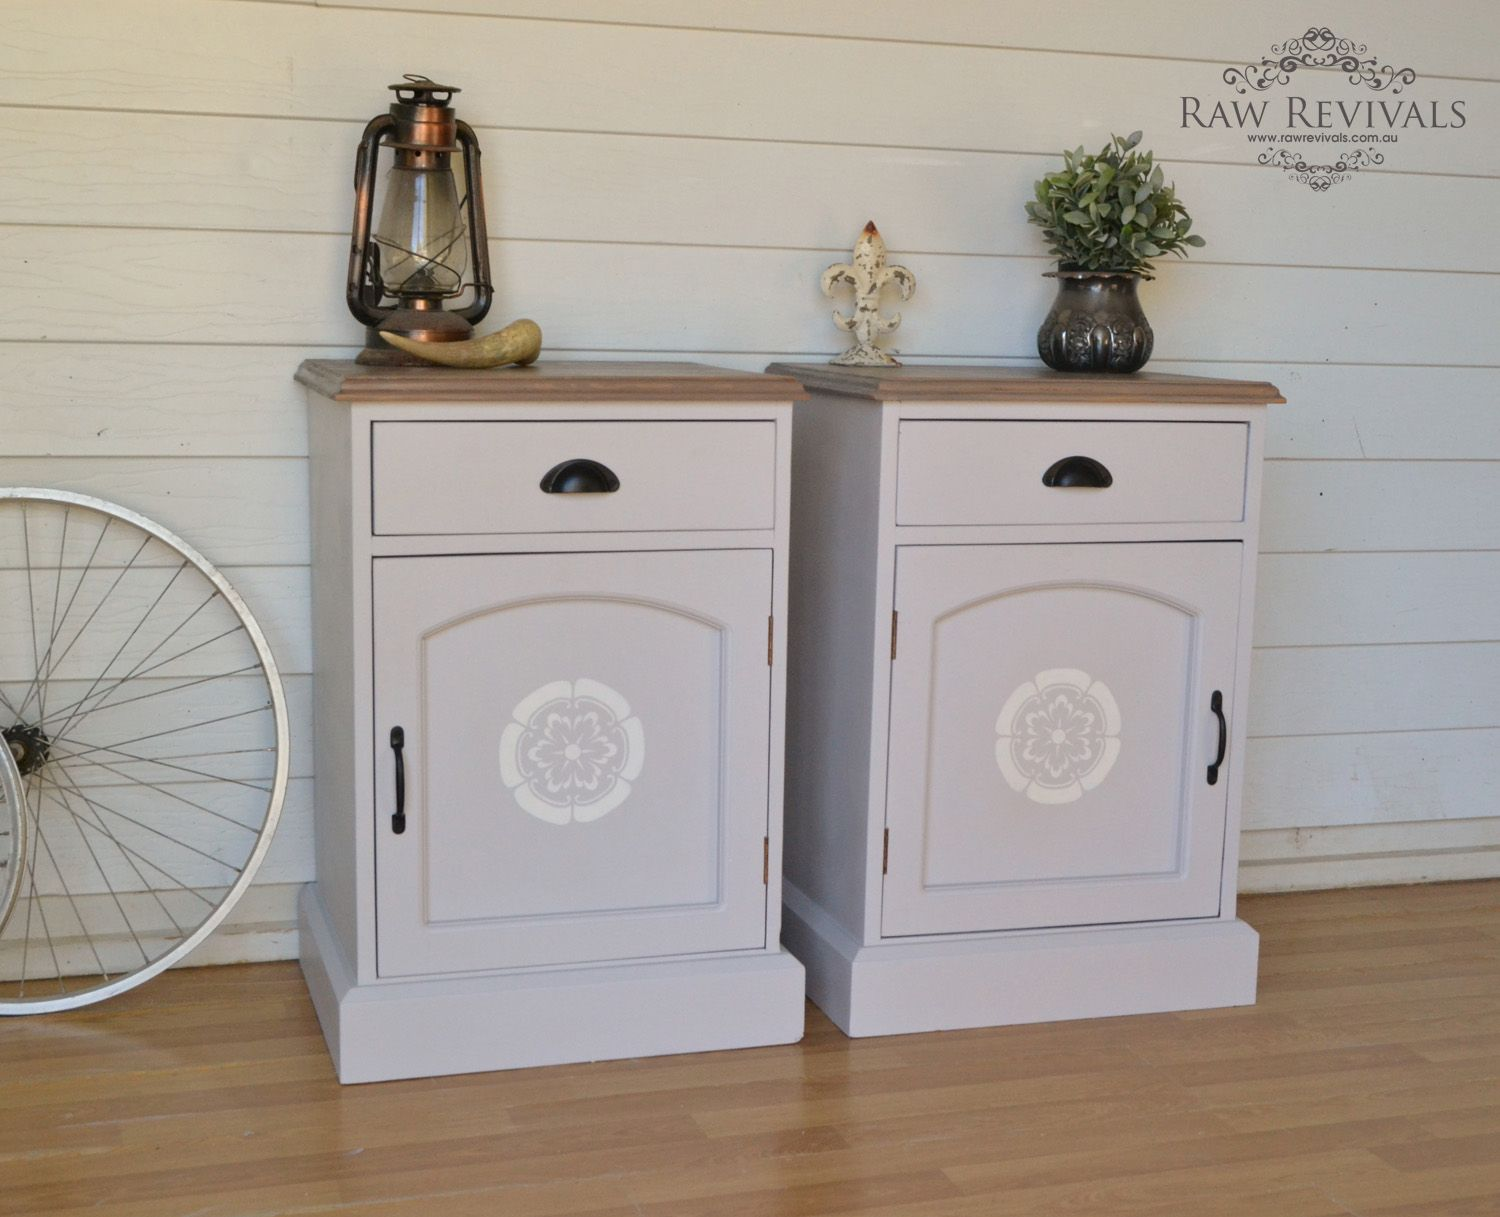 Vintage grey bedside tables with timber top grey bedside tables grey bedside tables with timber top and white stencil on doors rawrevivals watchthetrailerfo